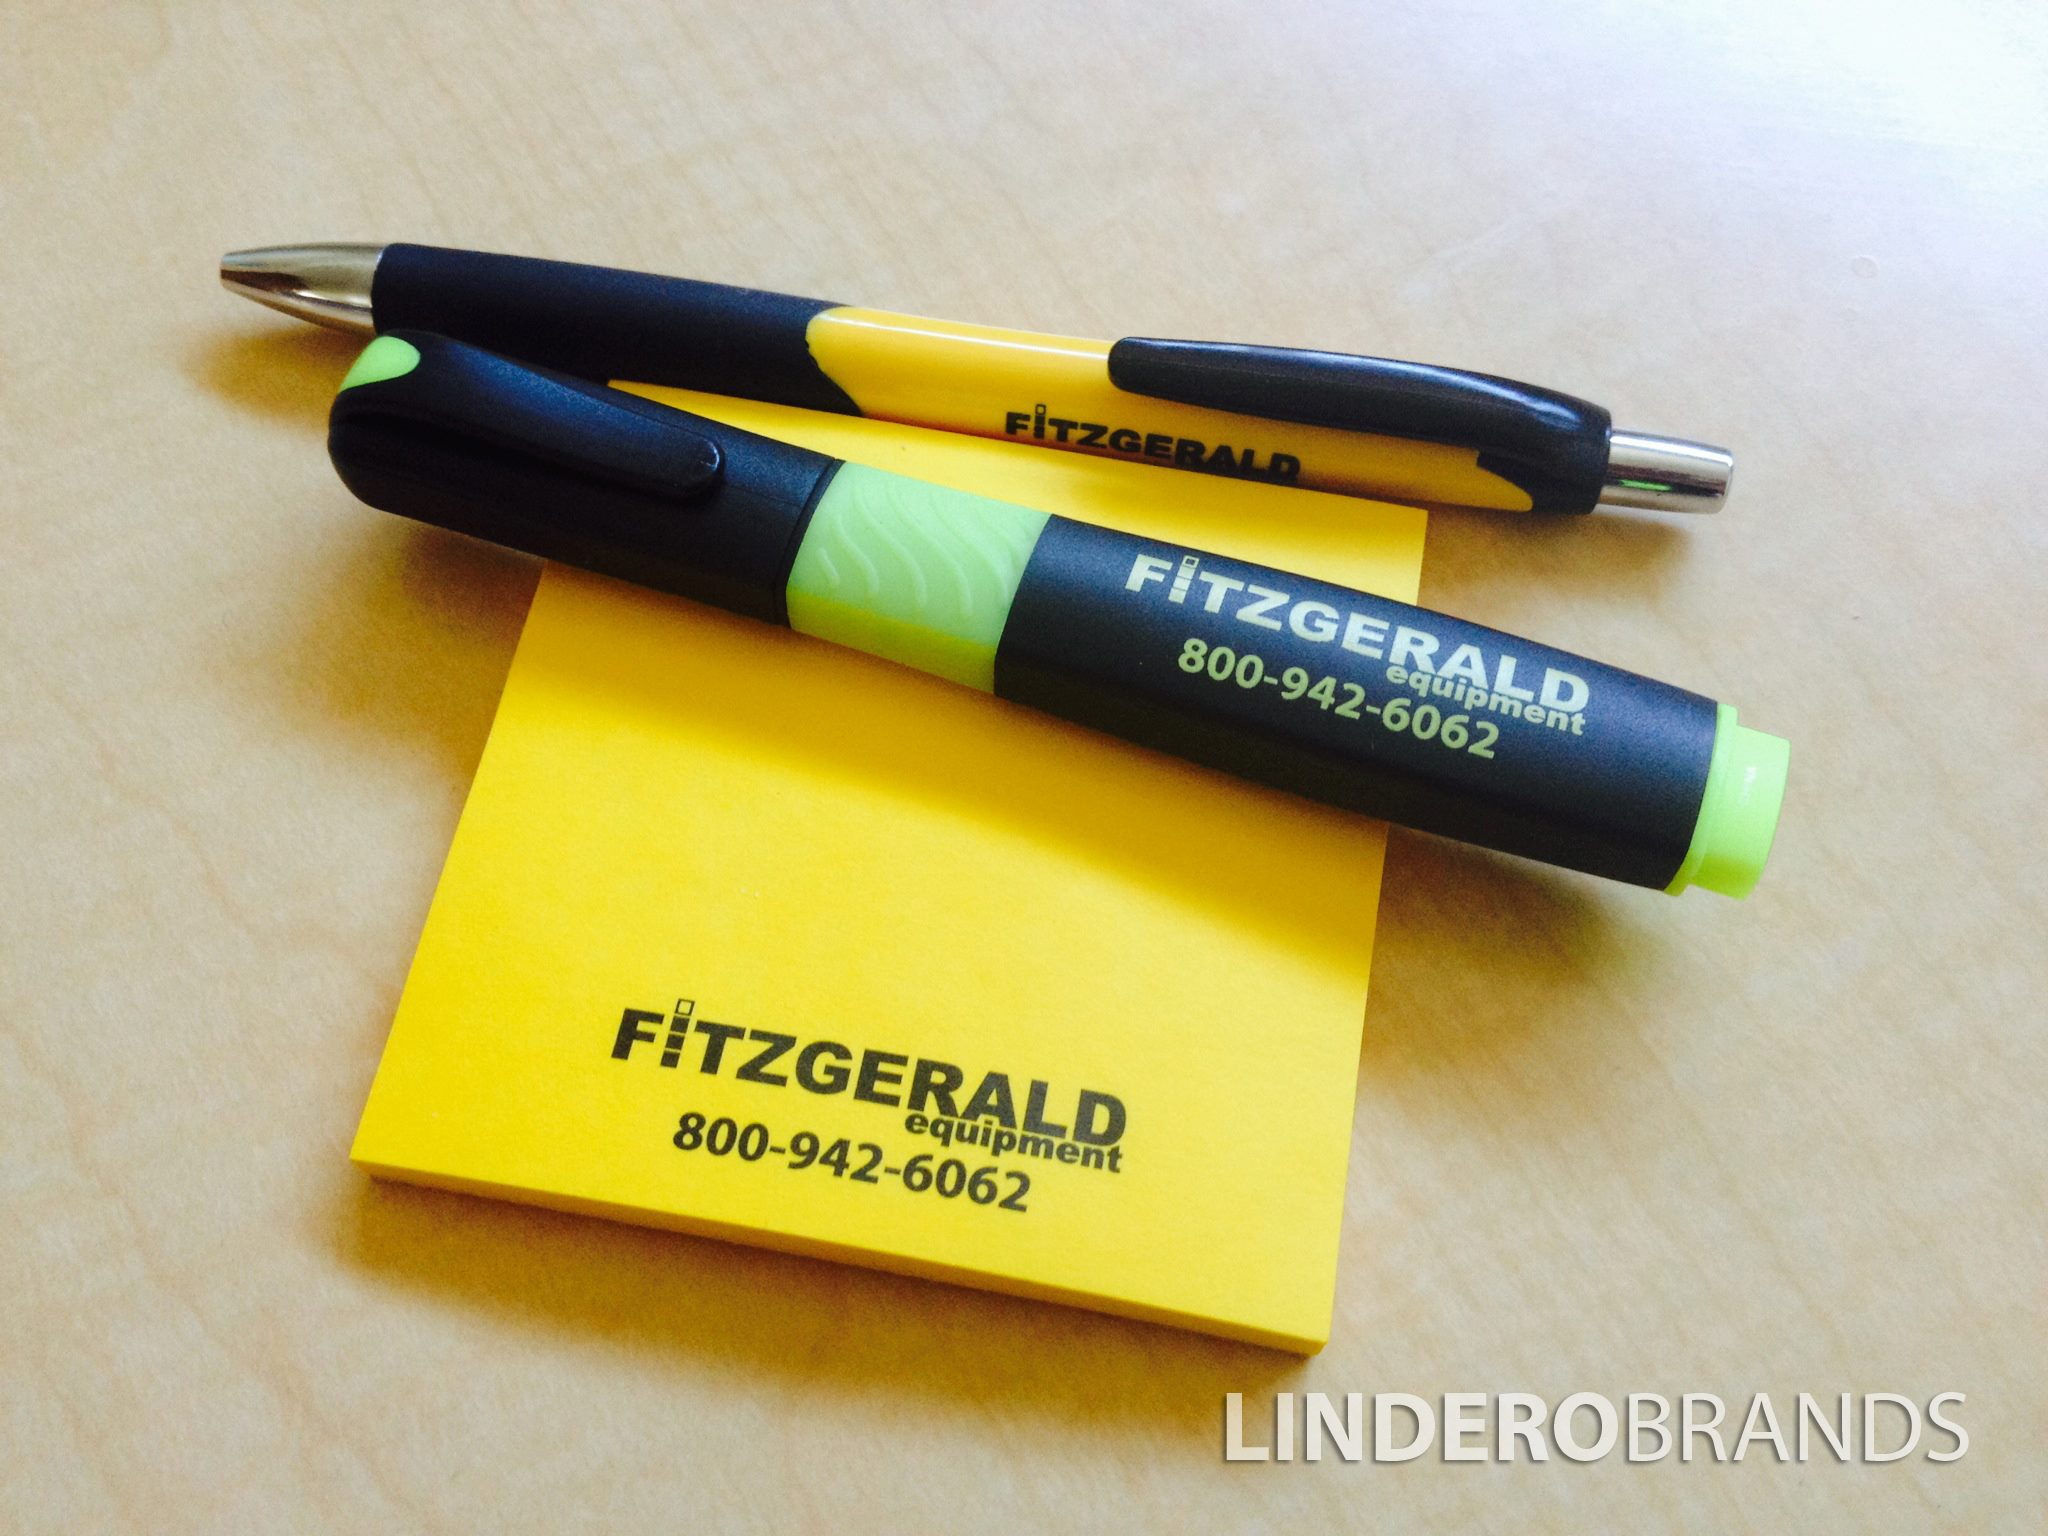 Fitzgerald Equipment Promotional Products